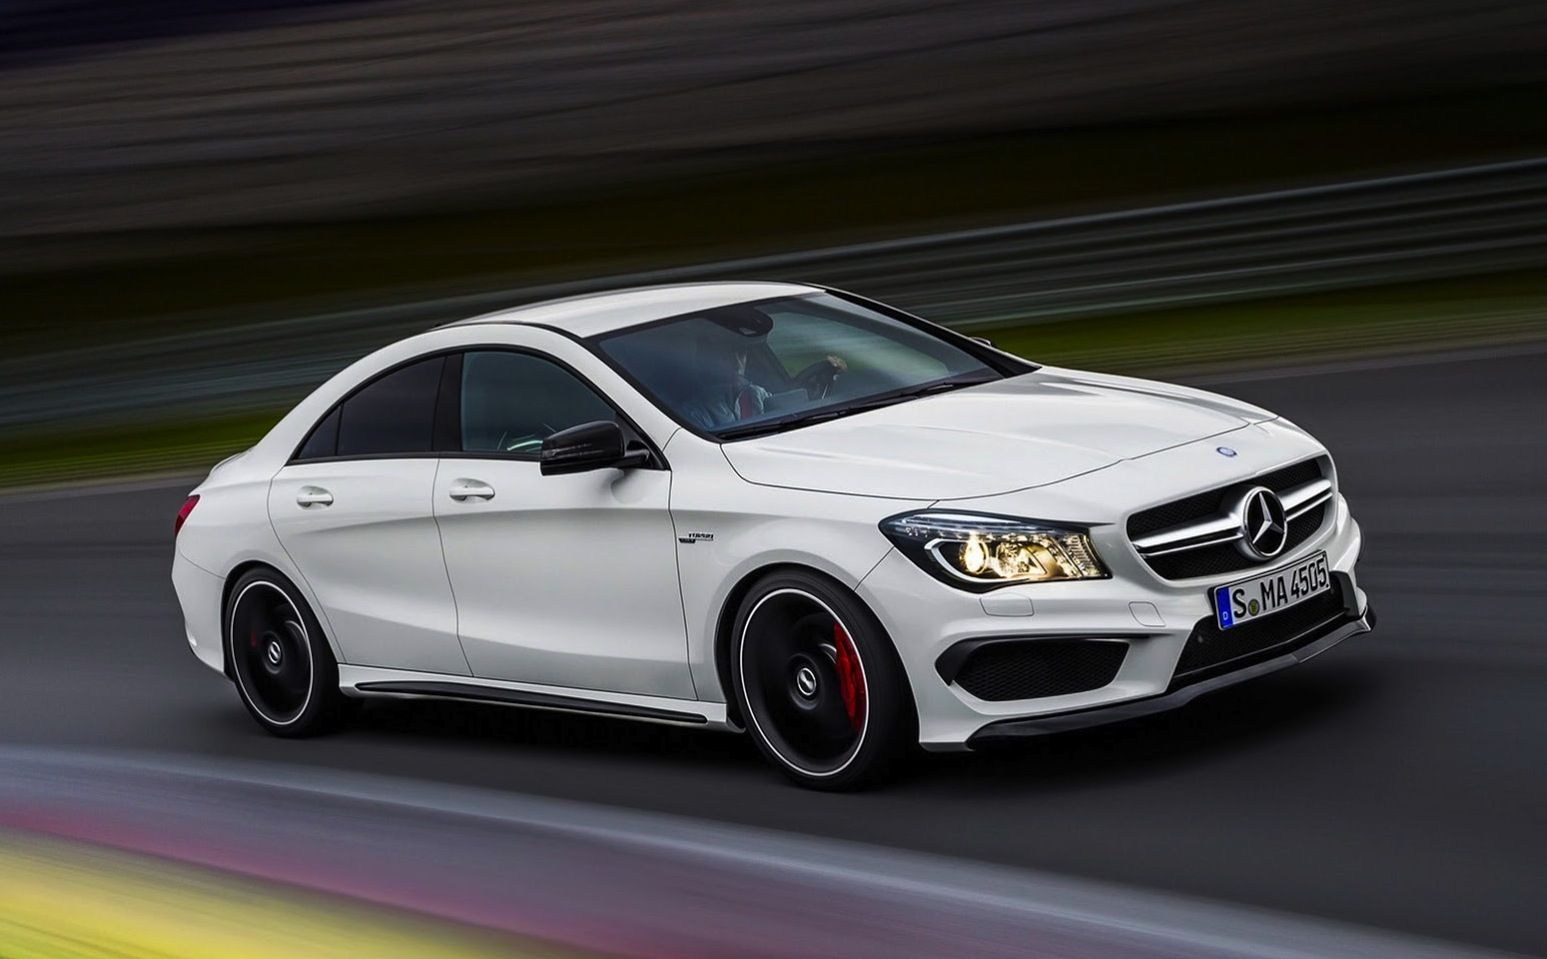 2013 mercedes benz cla 45 amg liter inline 4 turbo with 355 horsepower 0 to 60 mph in seconds top speed of 155 mph